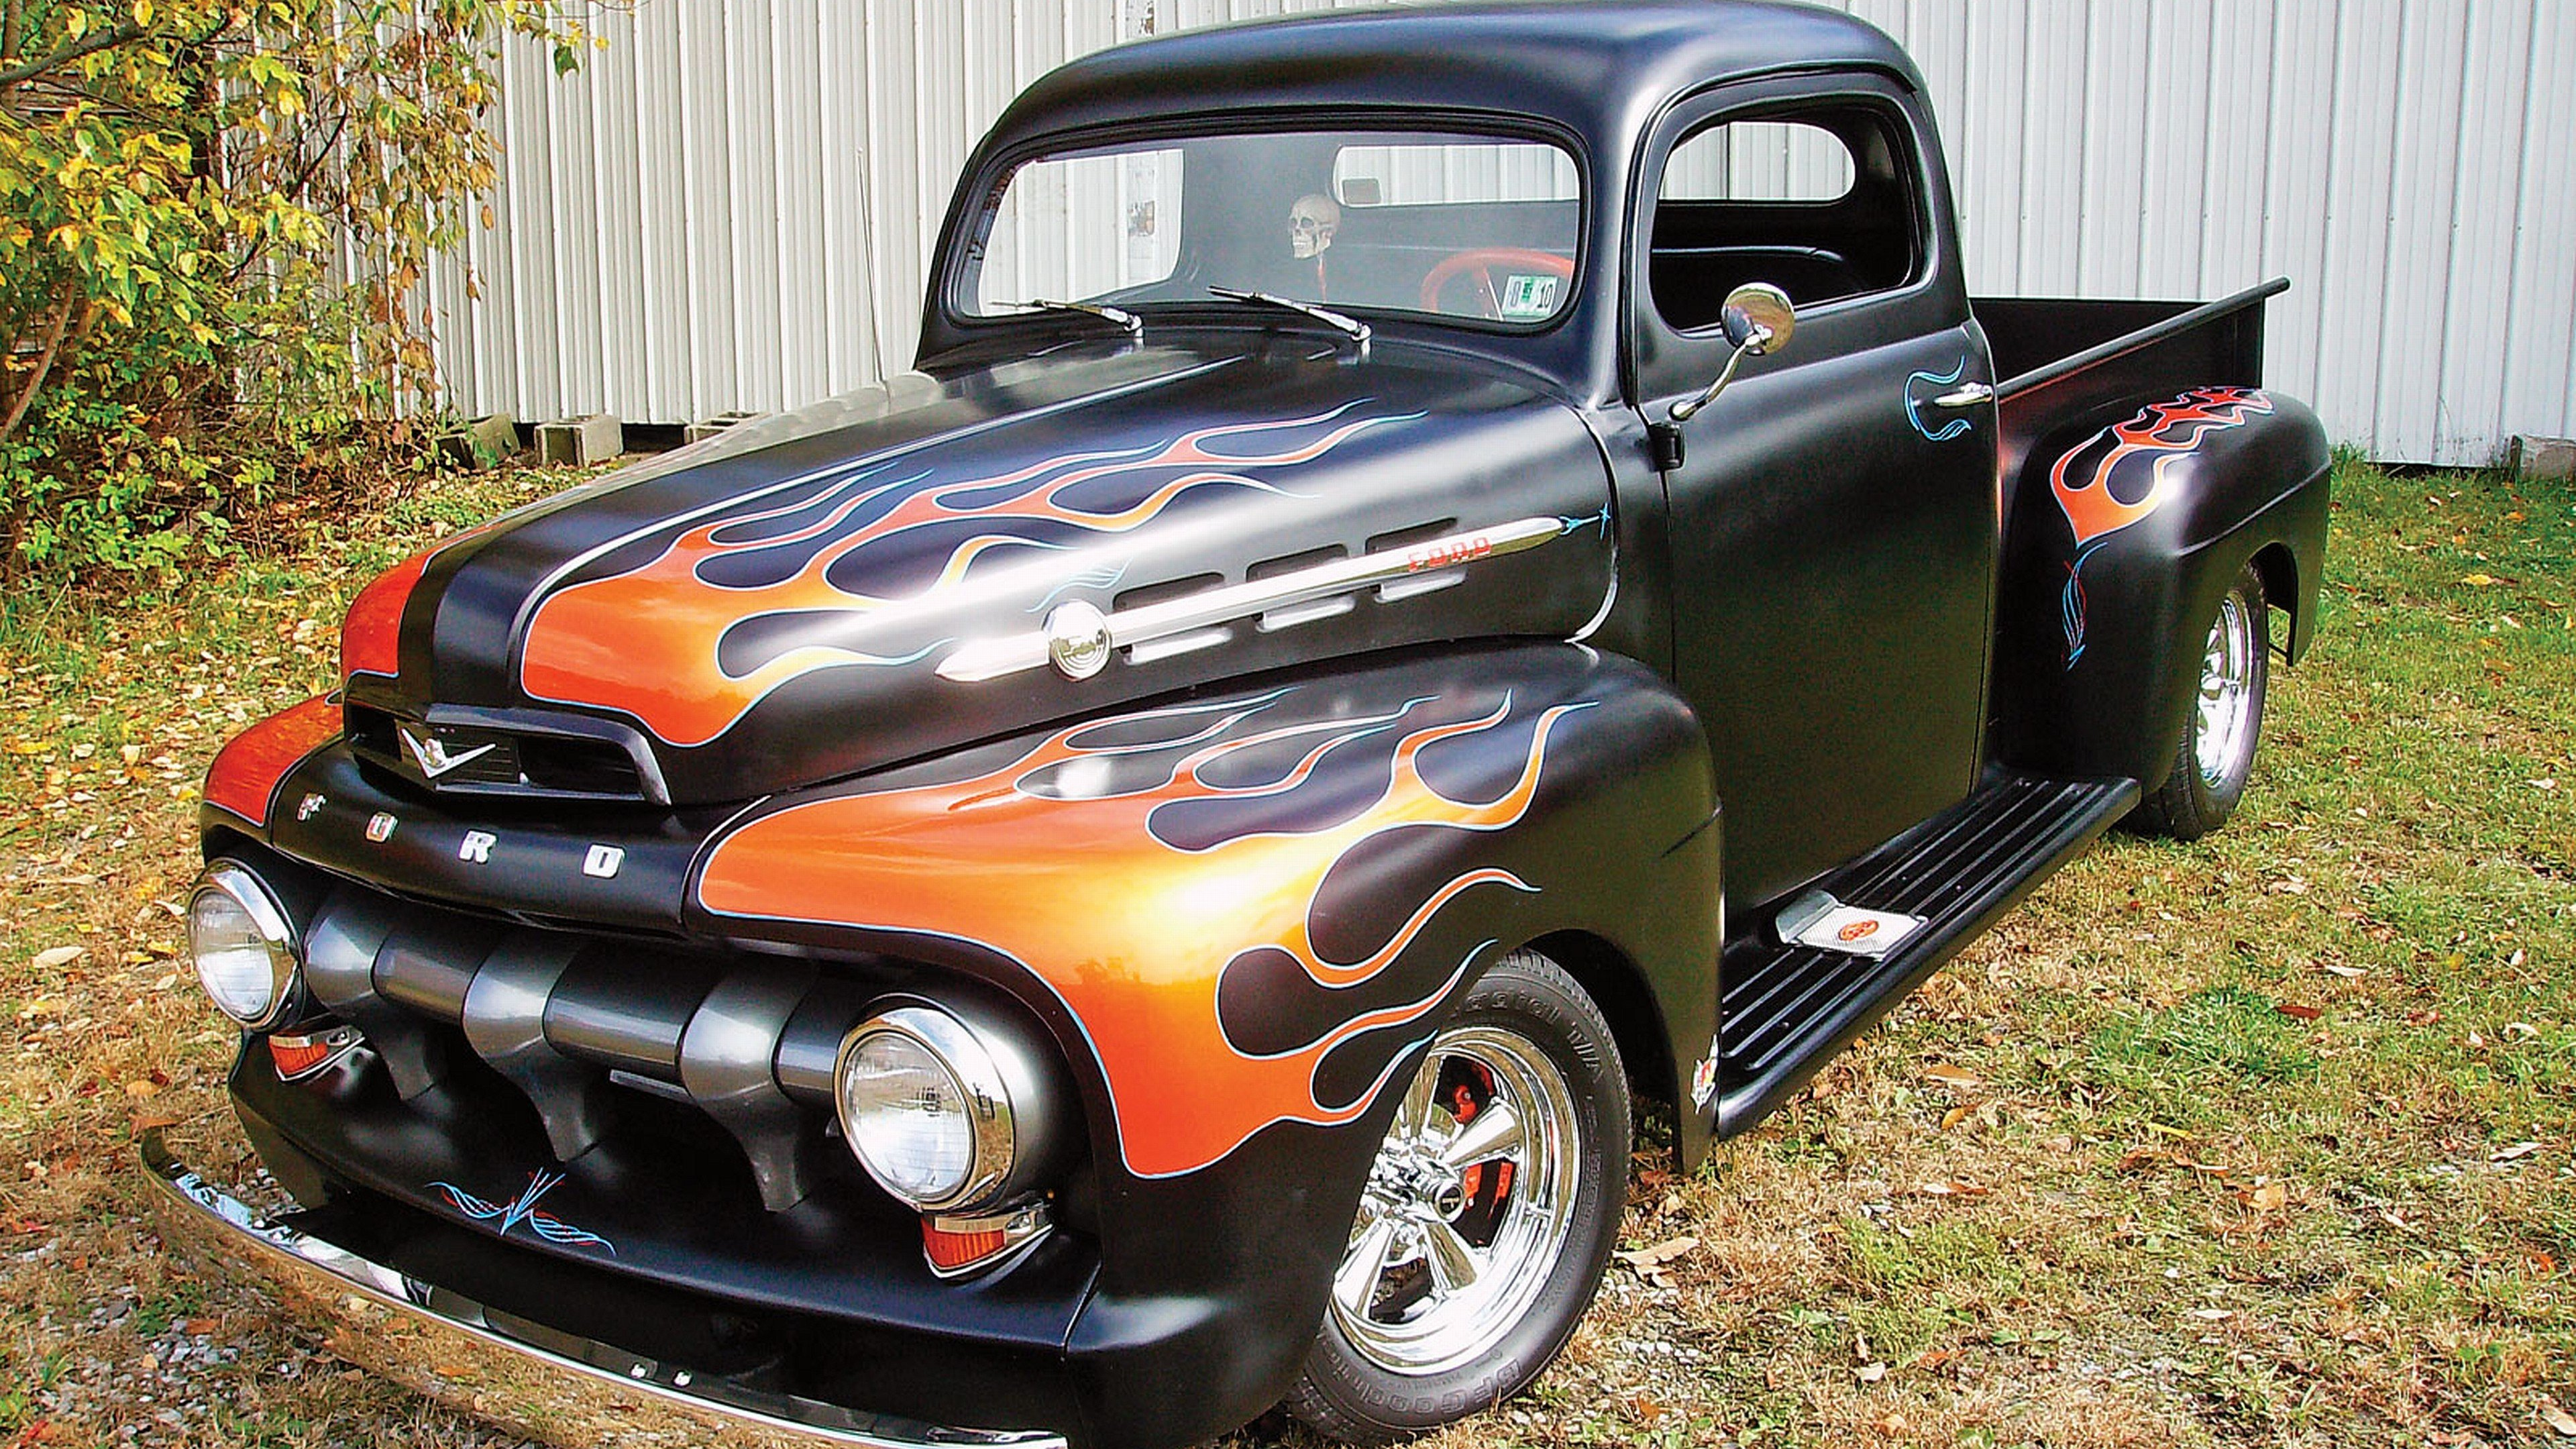 flames Hot Rod Ford trucks Classic vehicles wallpaper background 3840x2160